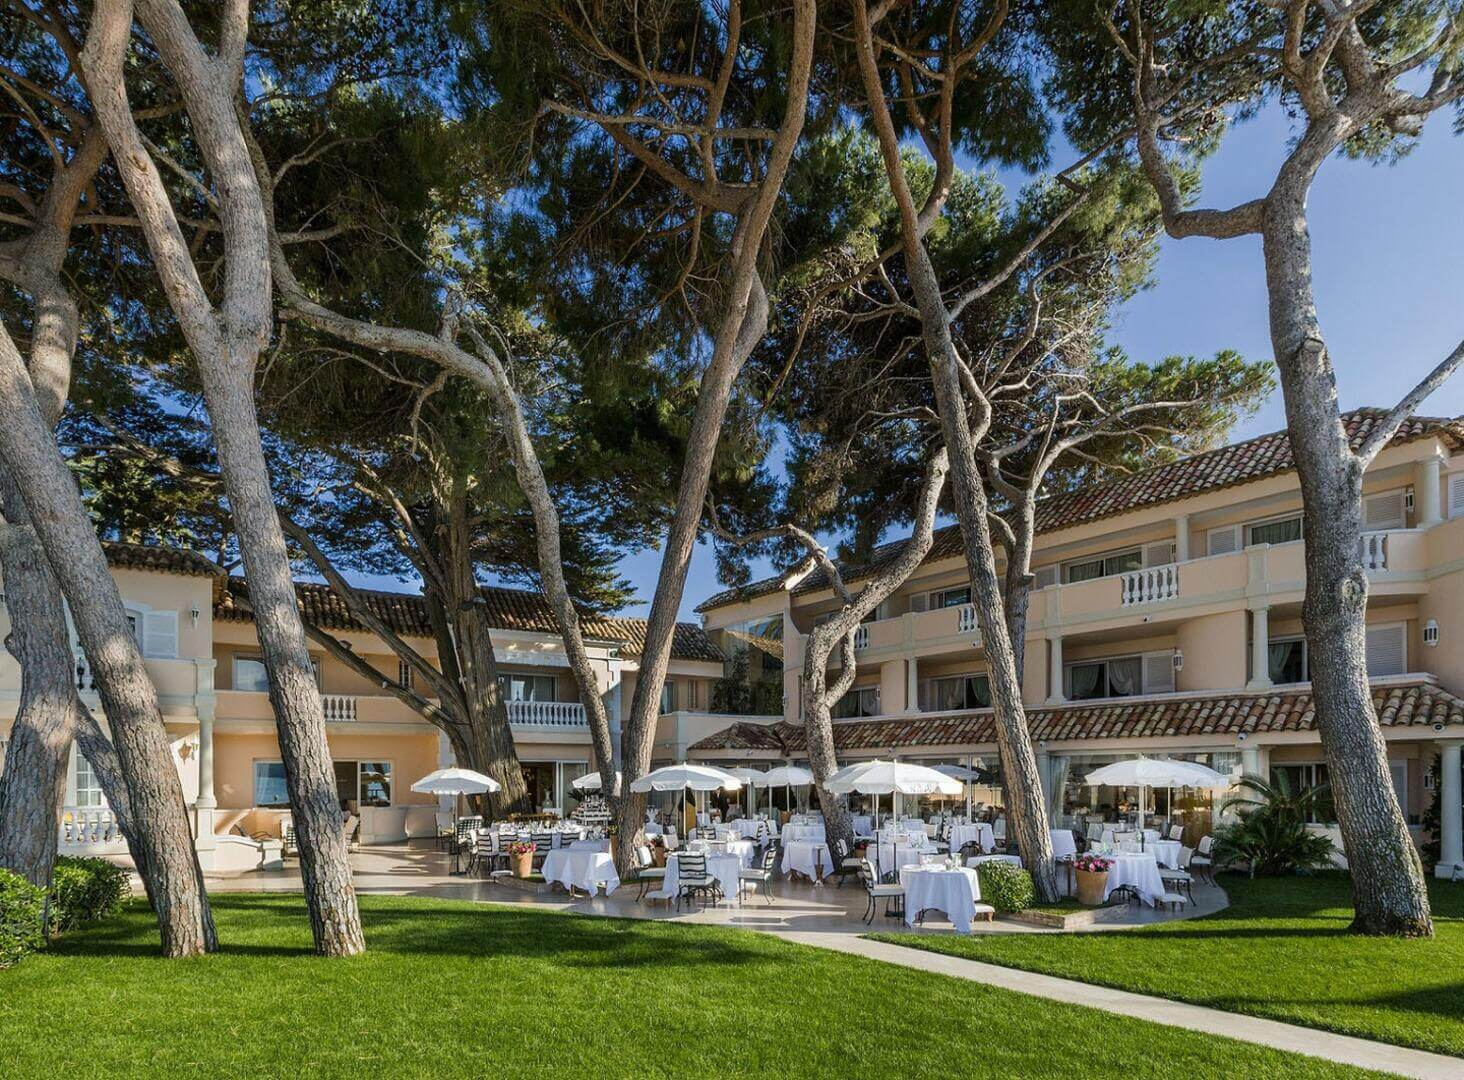 Luxury hotel Le Cheval Blanc in Saint Tropez